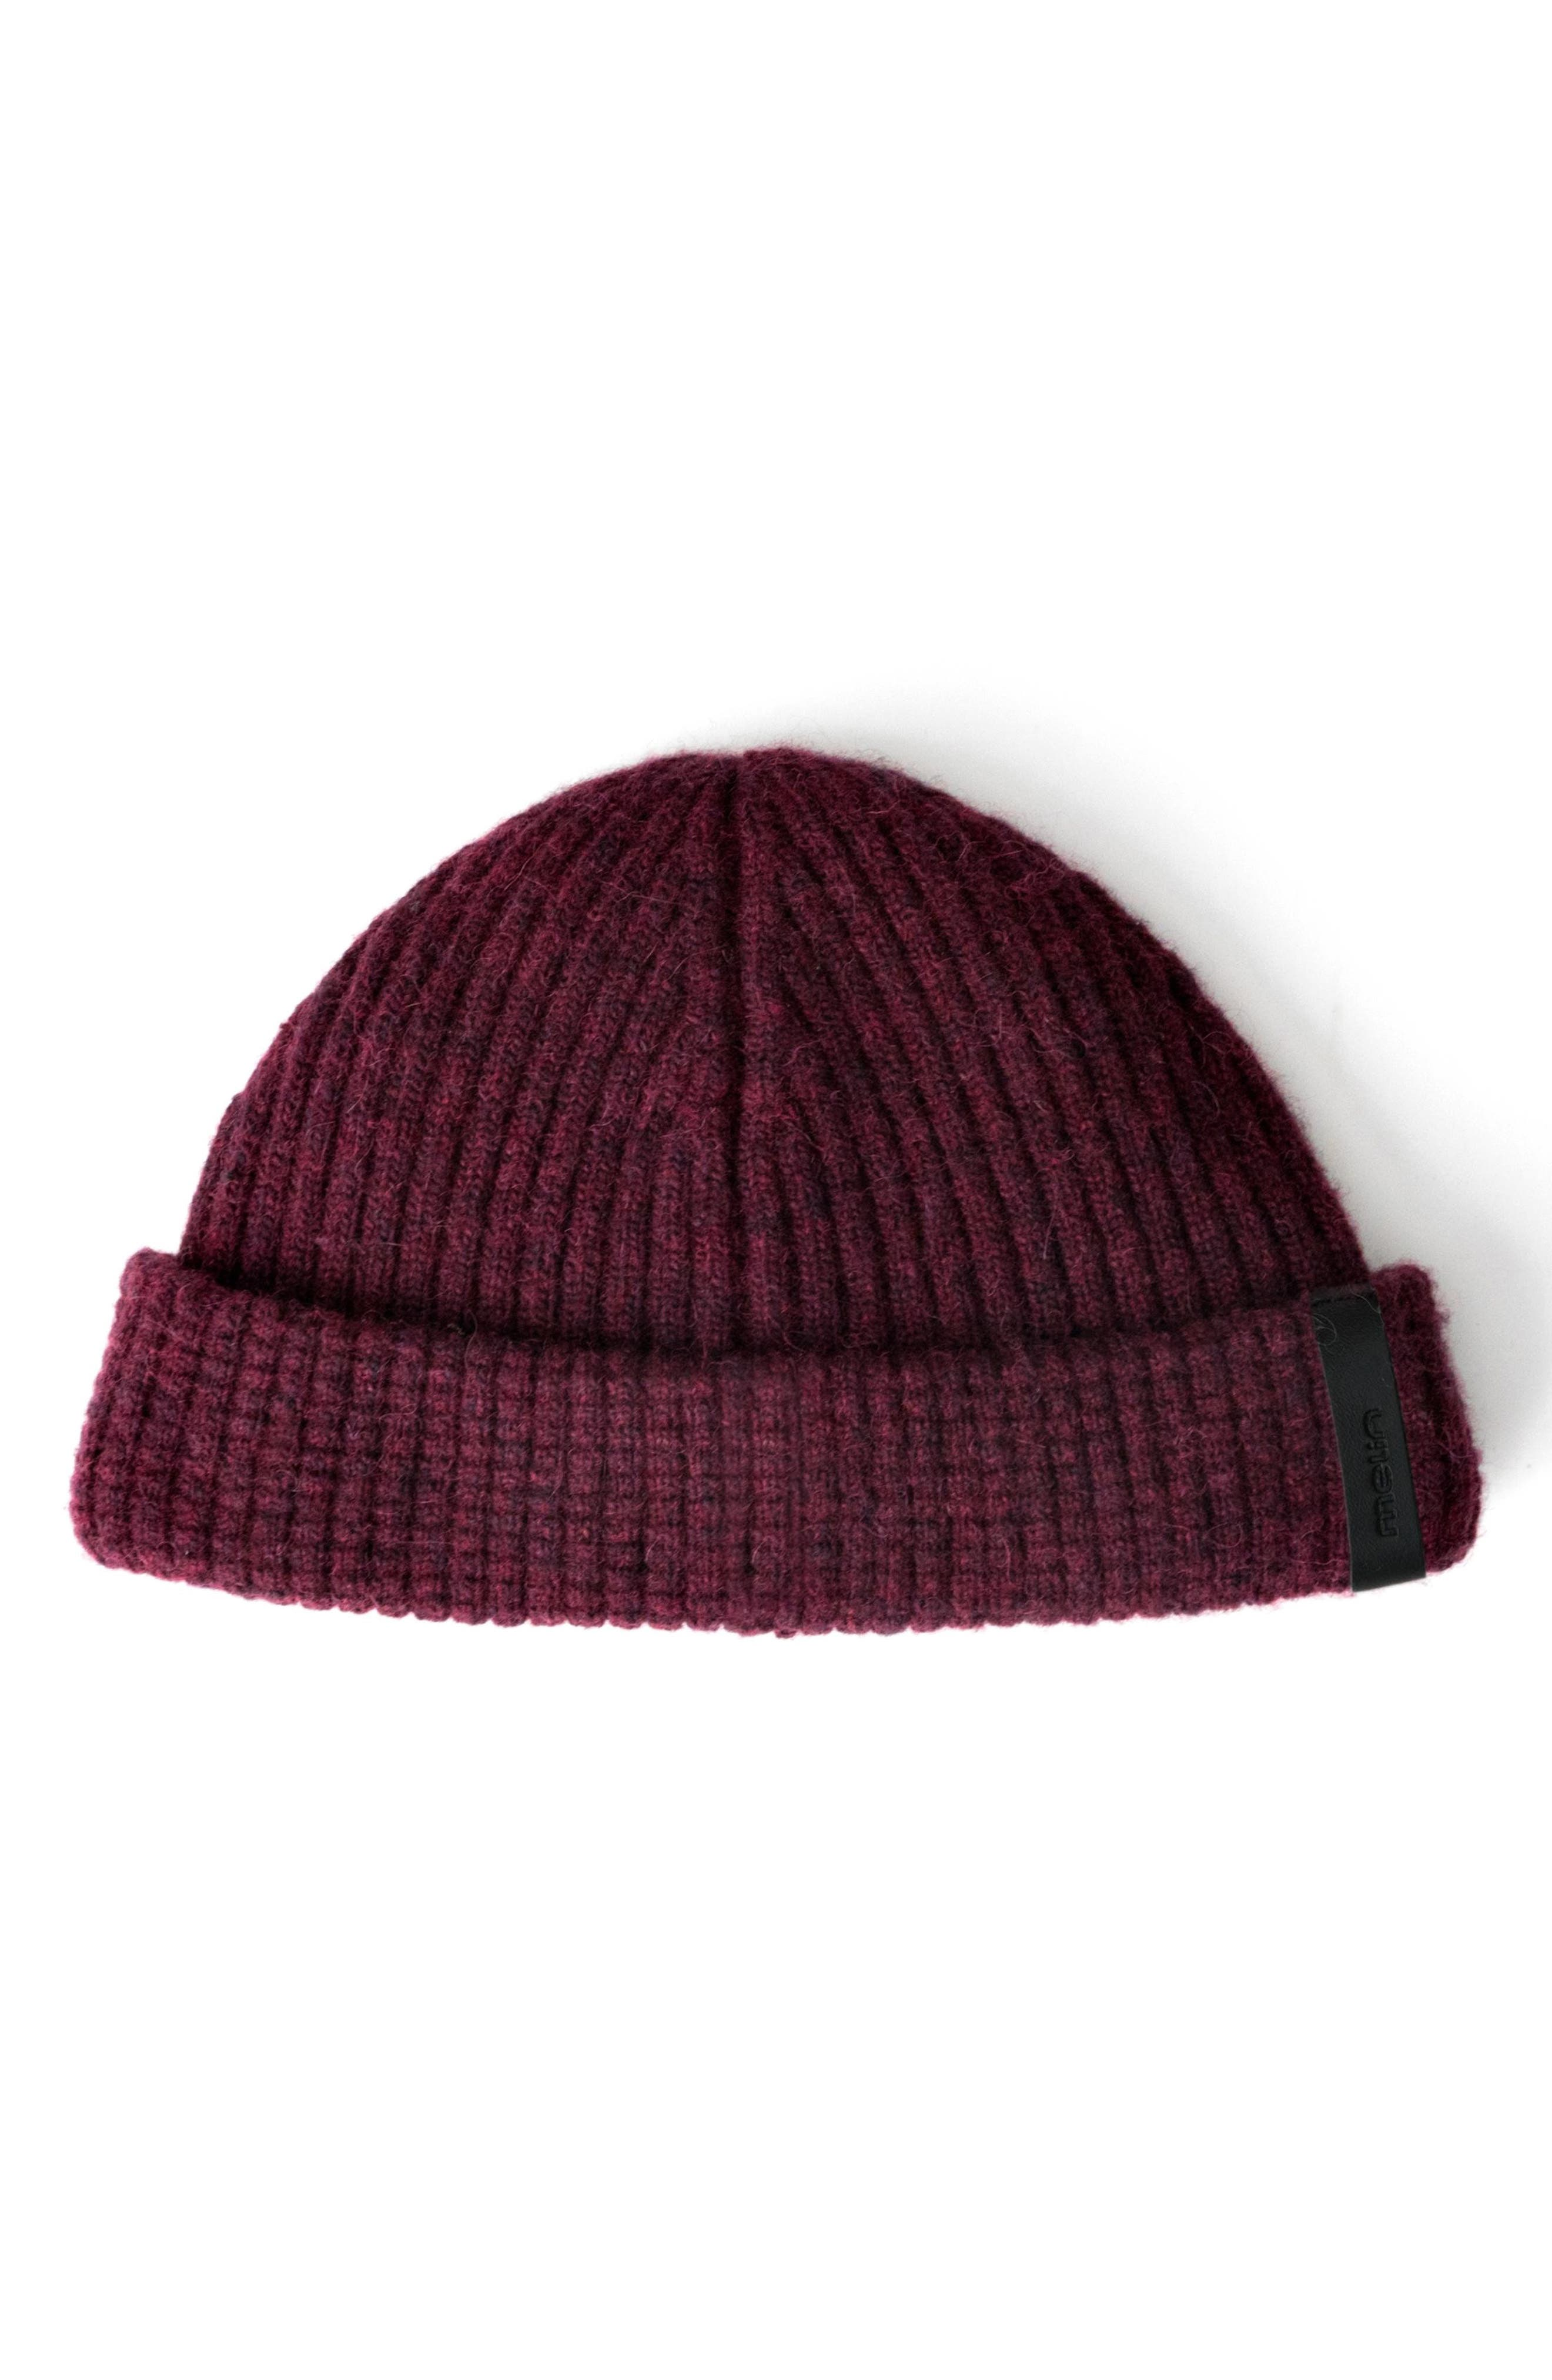 MELIN The Destination Short Beanie - Red in Deep Red